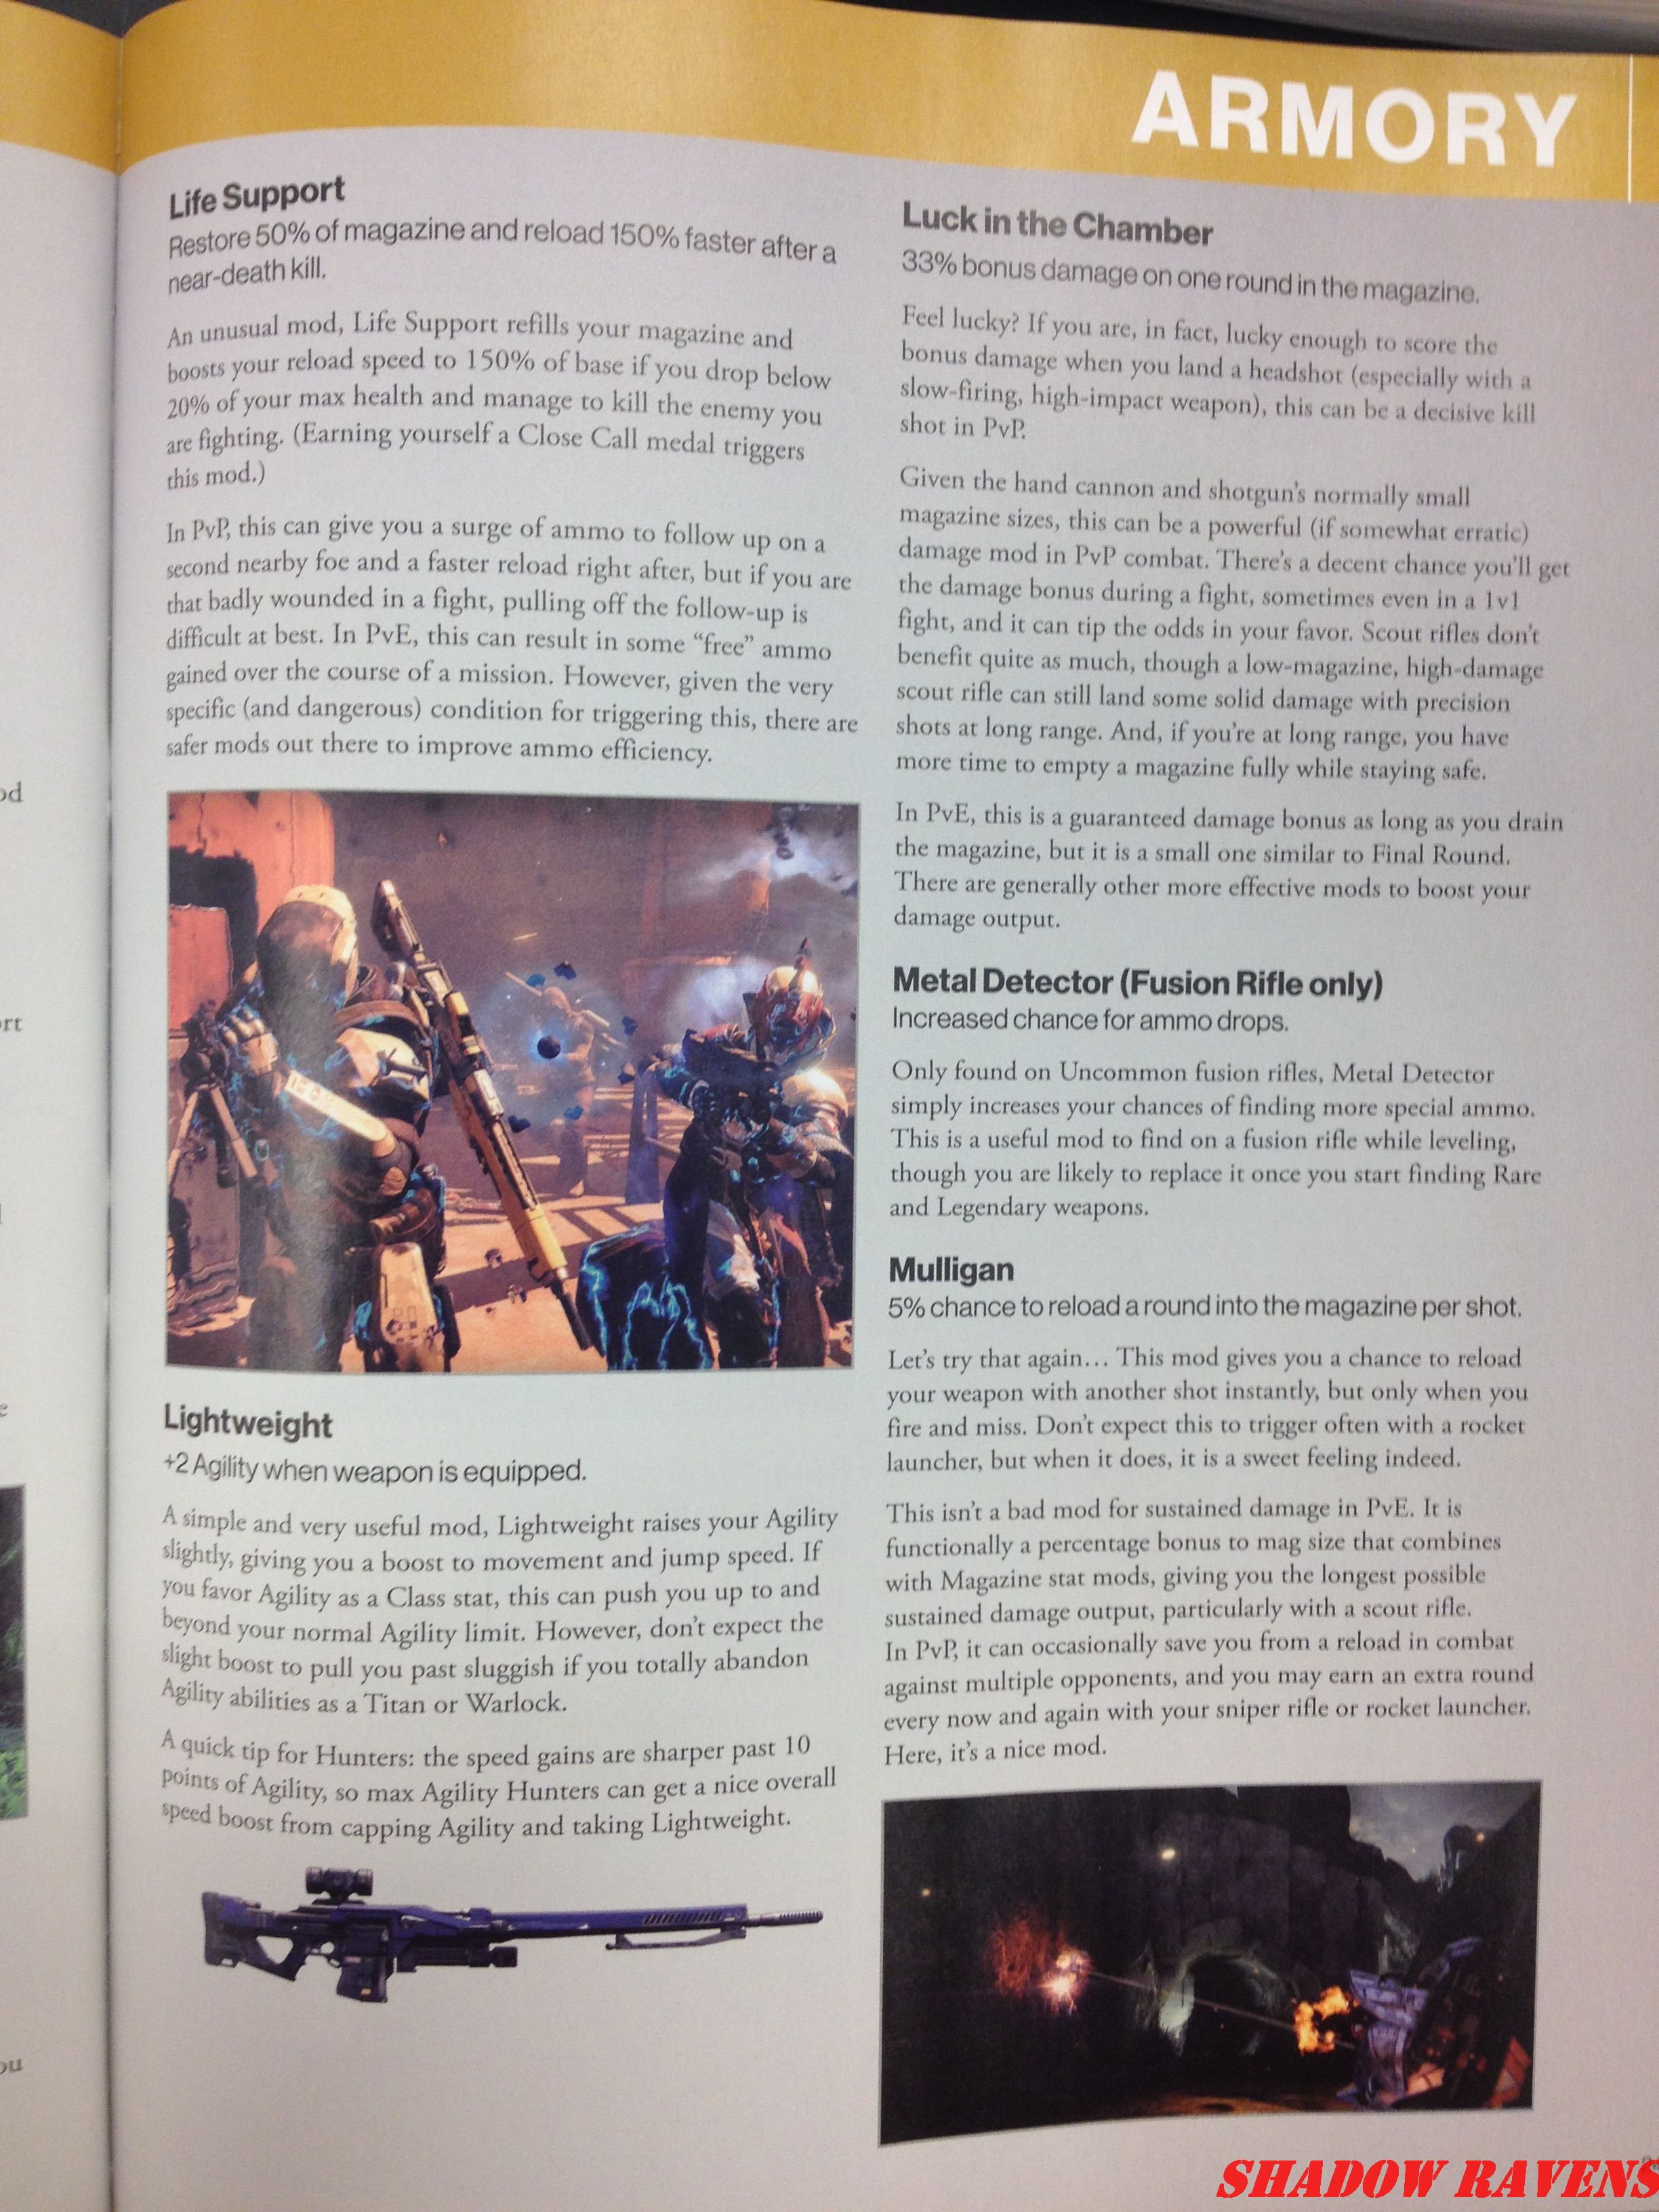 First Look: Inside the Strategy Guide